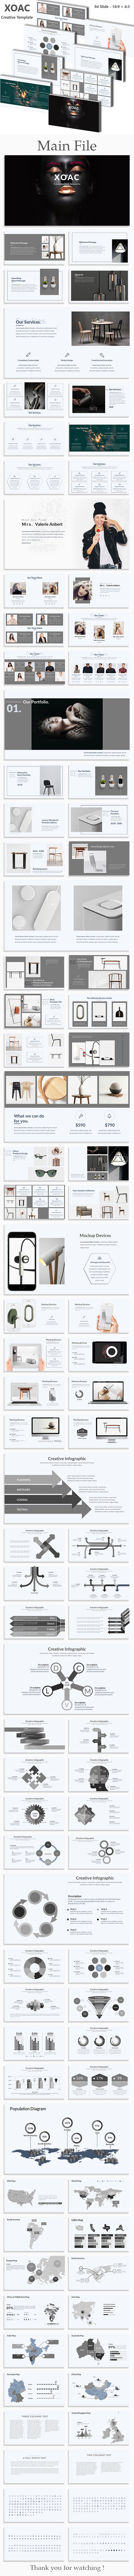 GraphicRiver Xoac Creative Google Slide 20474104